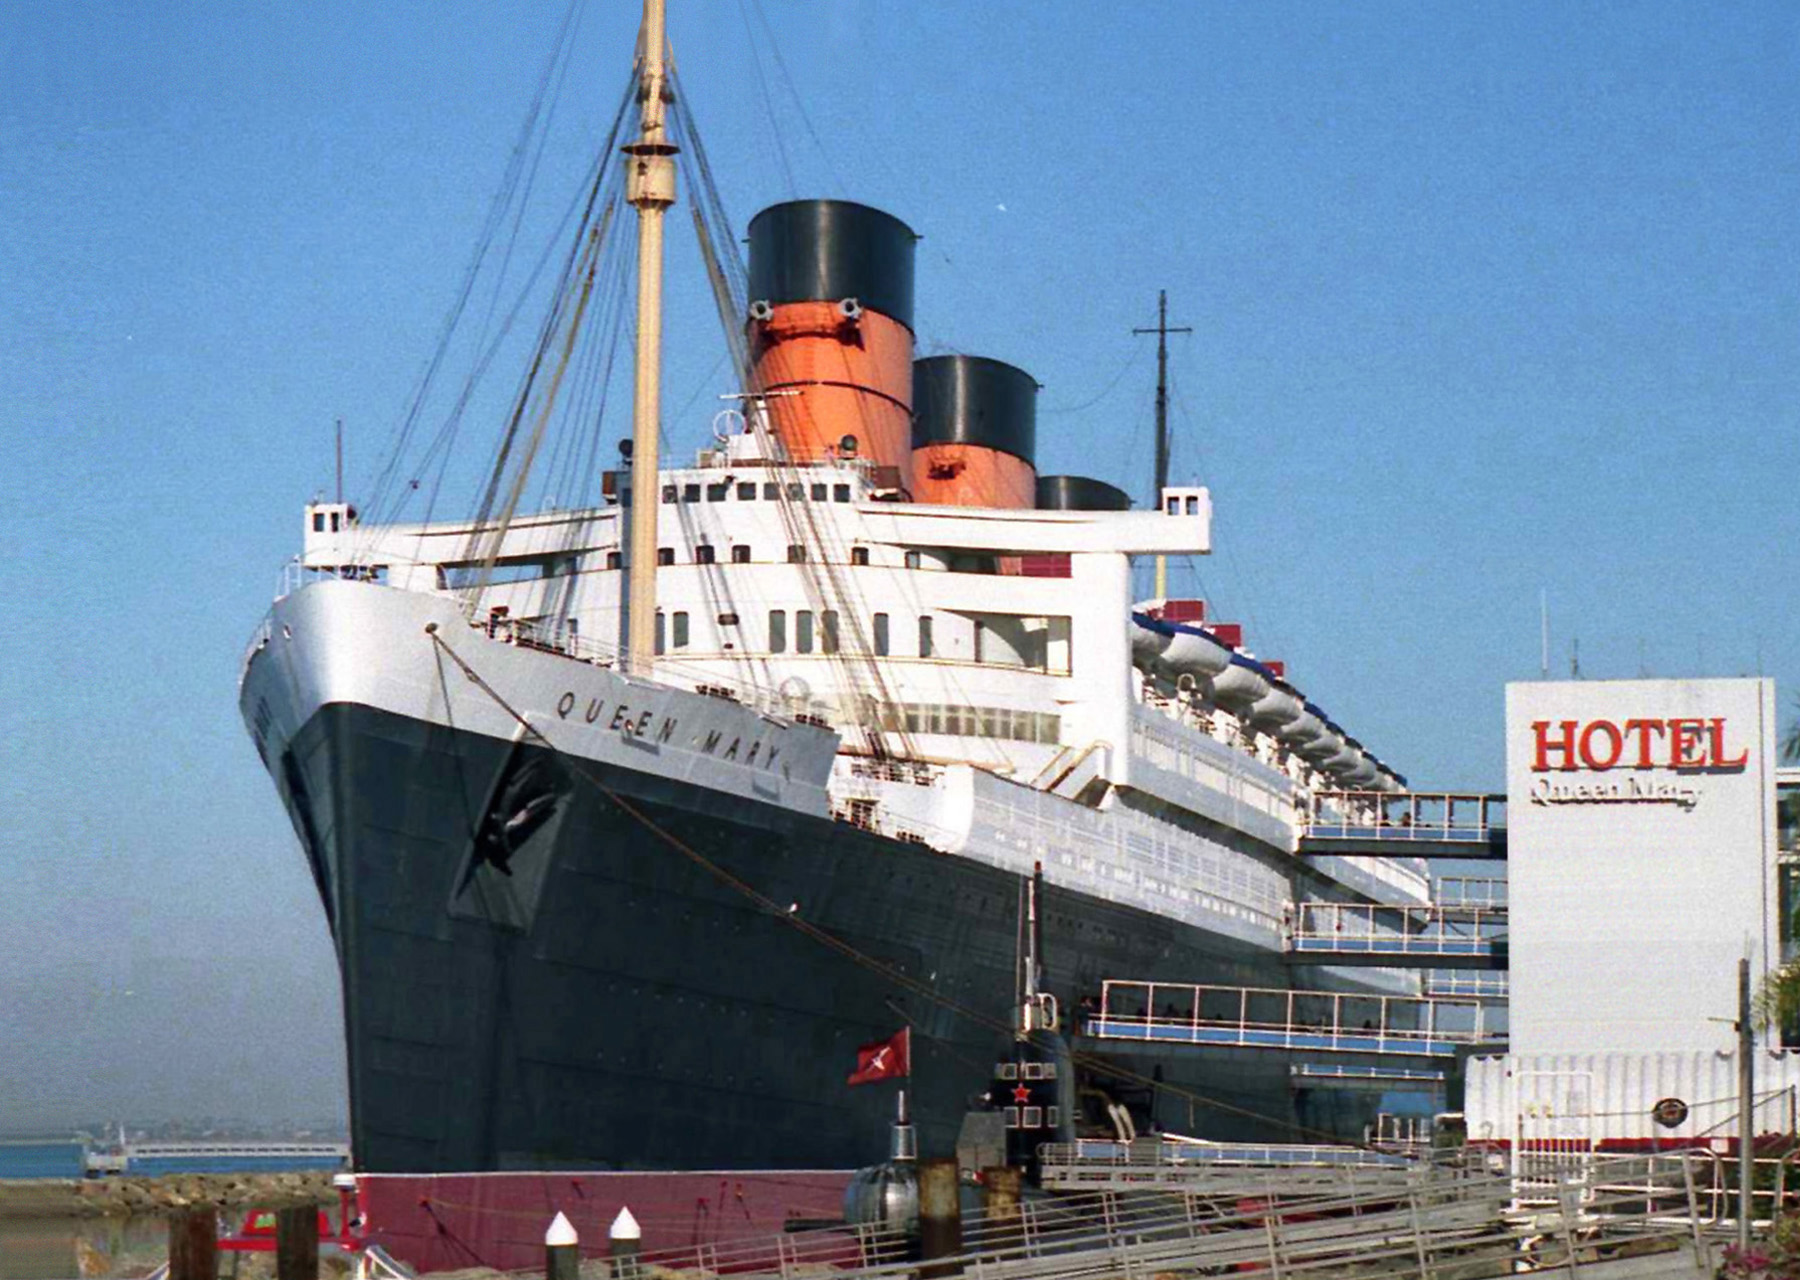 hotel-queen-mary-long-beach-01